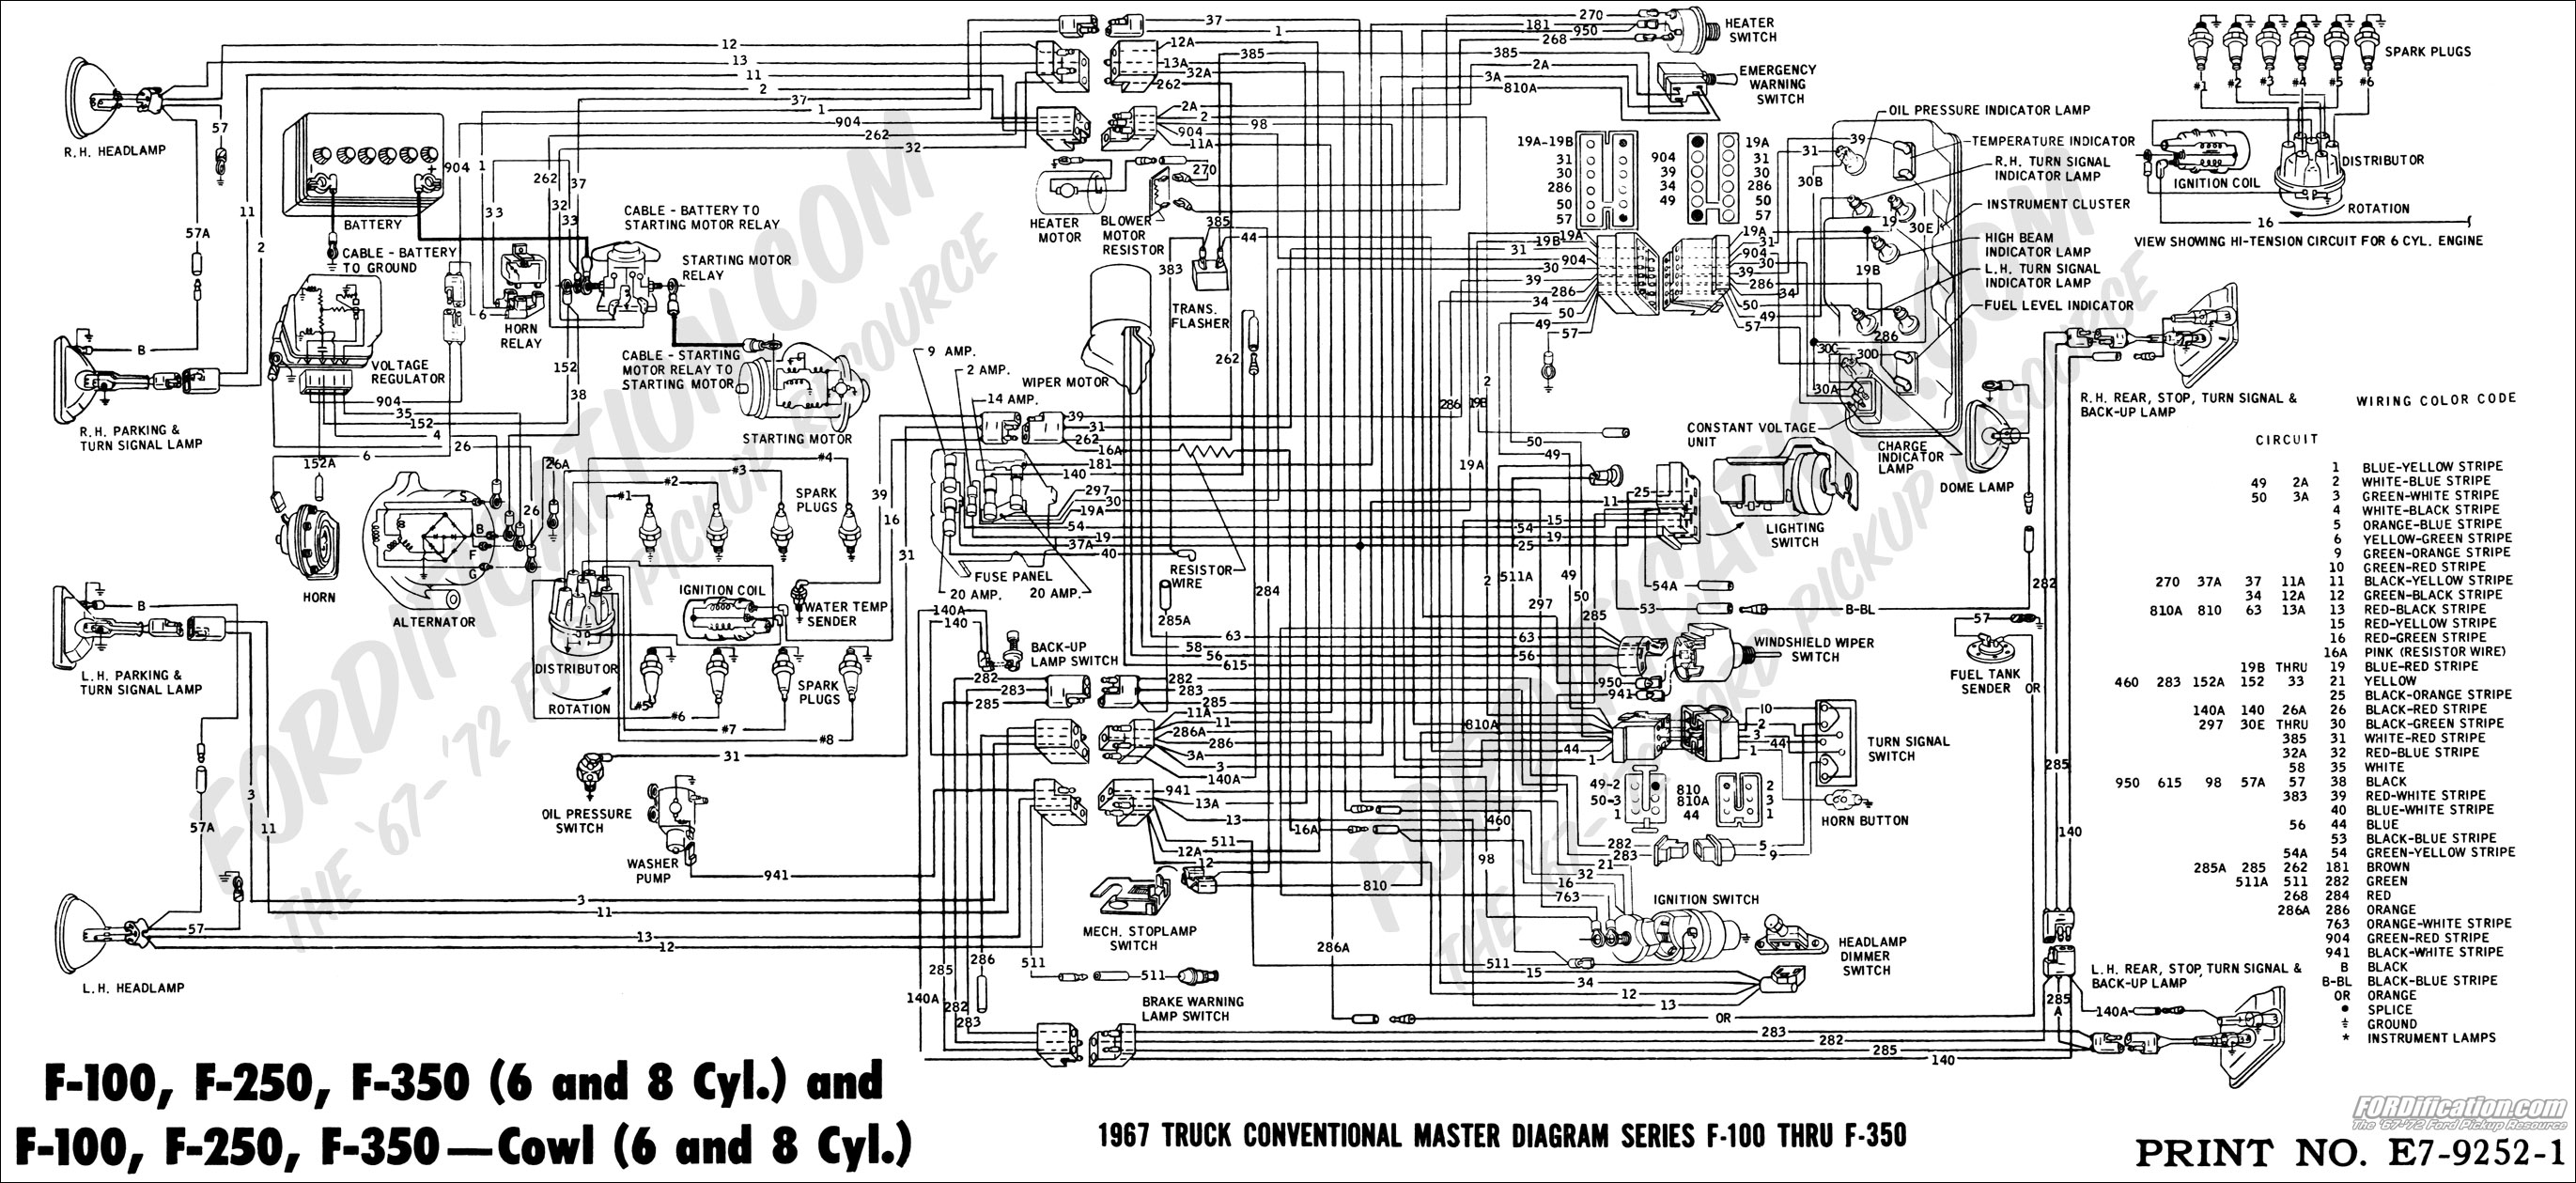 67masterdiagram ford truck technical drawings and schematics section h wiring 1991 ford ranger ignition wiring diagram at bakdesigns.co